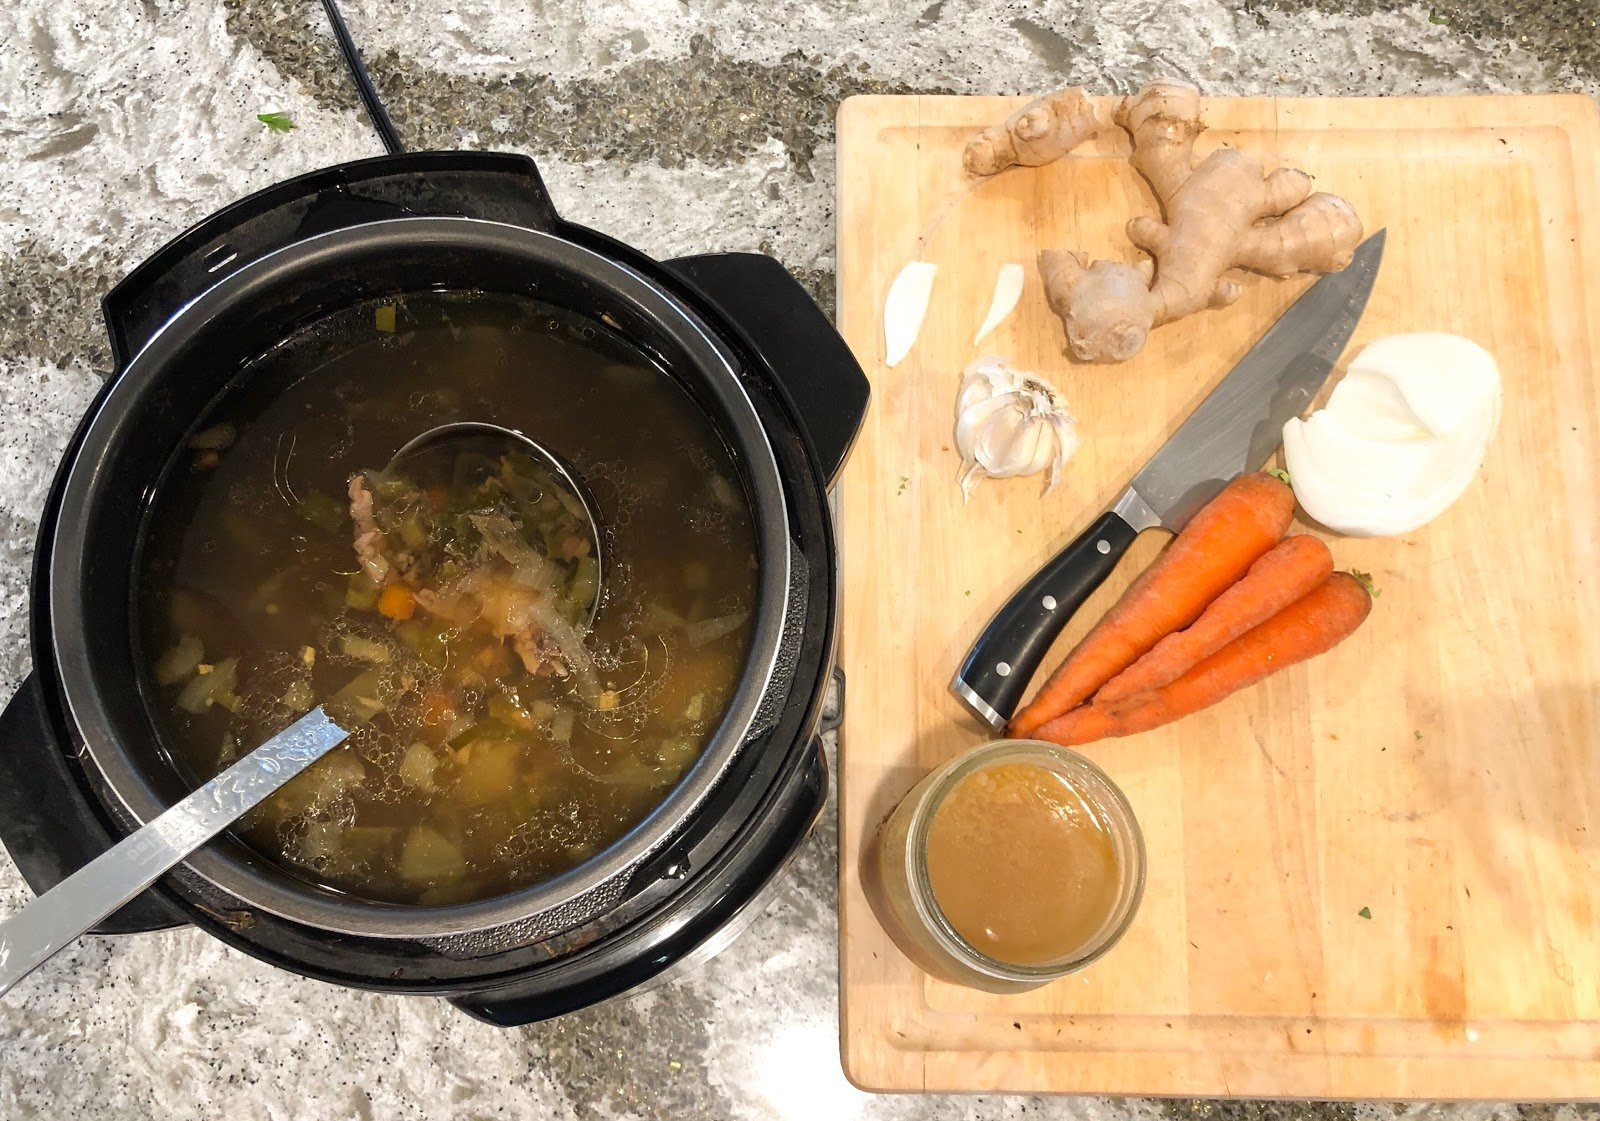 How to make instant pot bone broth: the 2-hour method